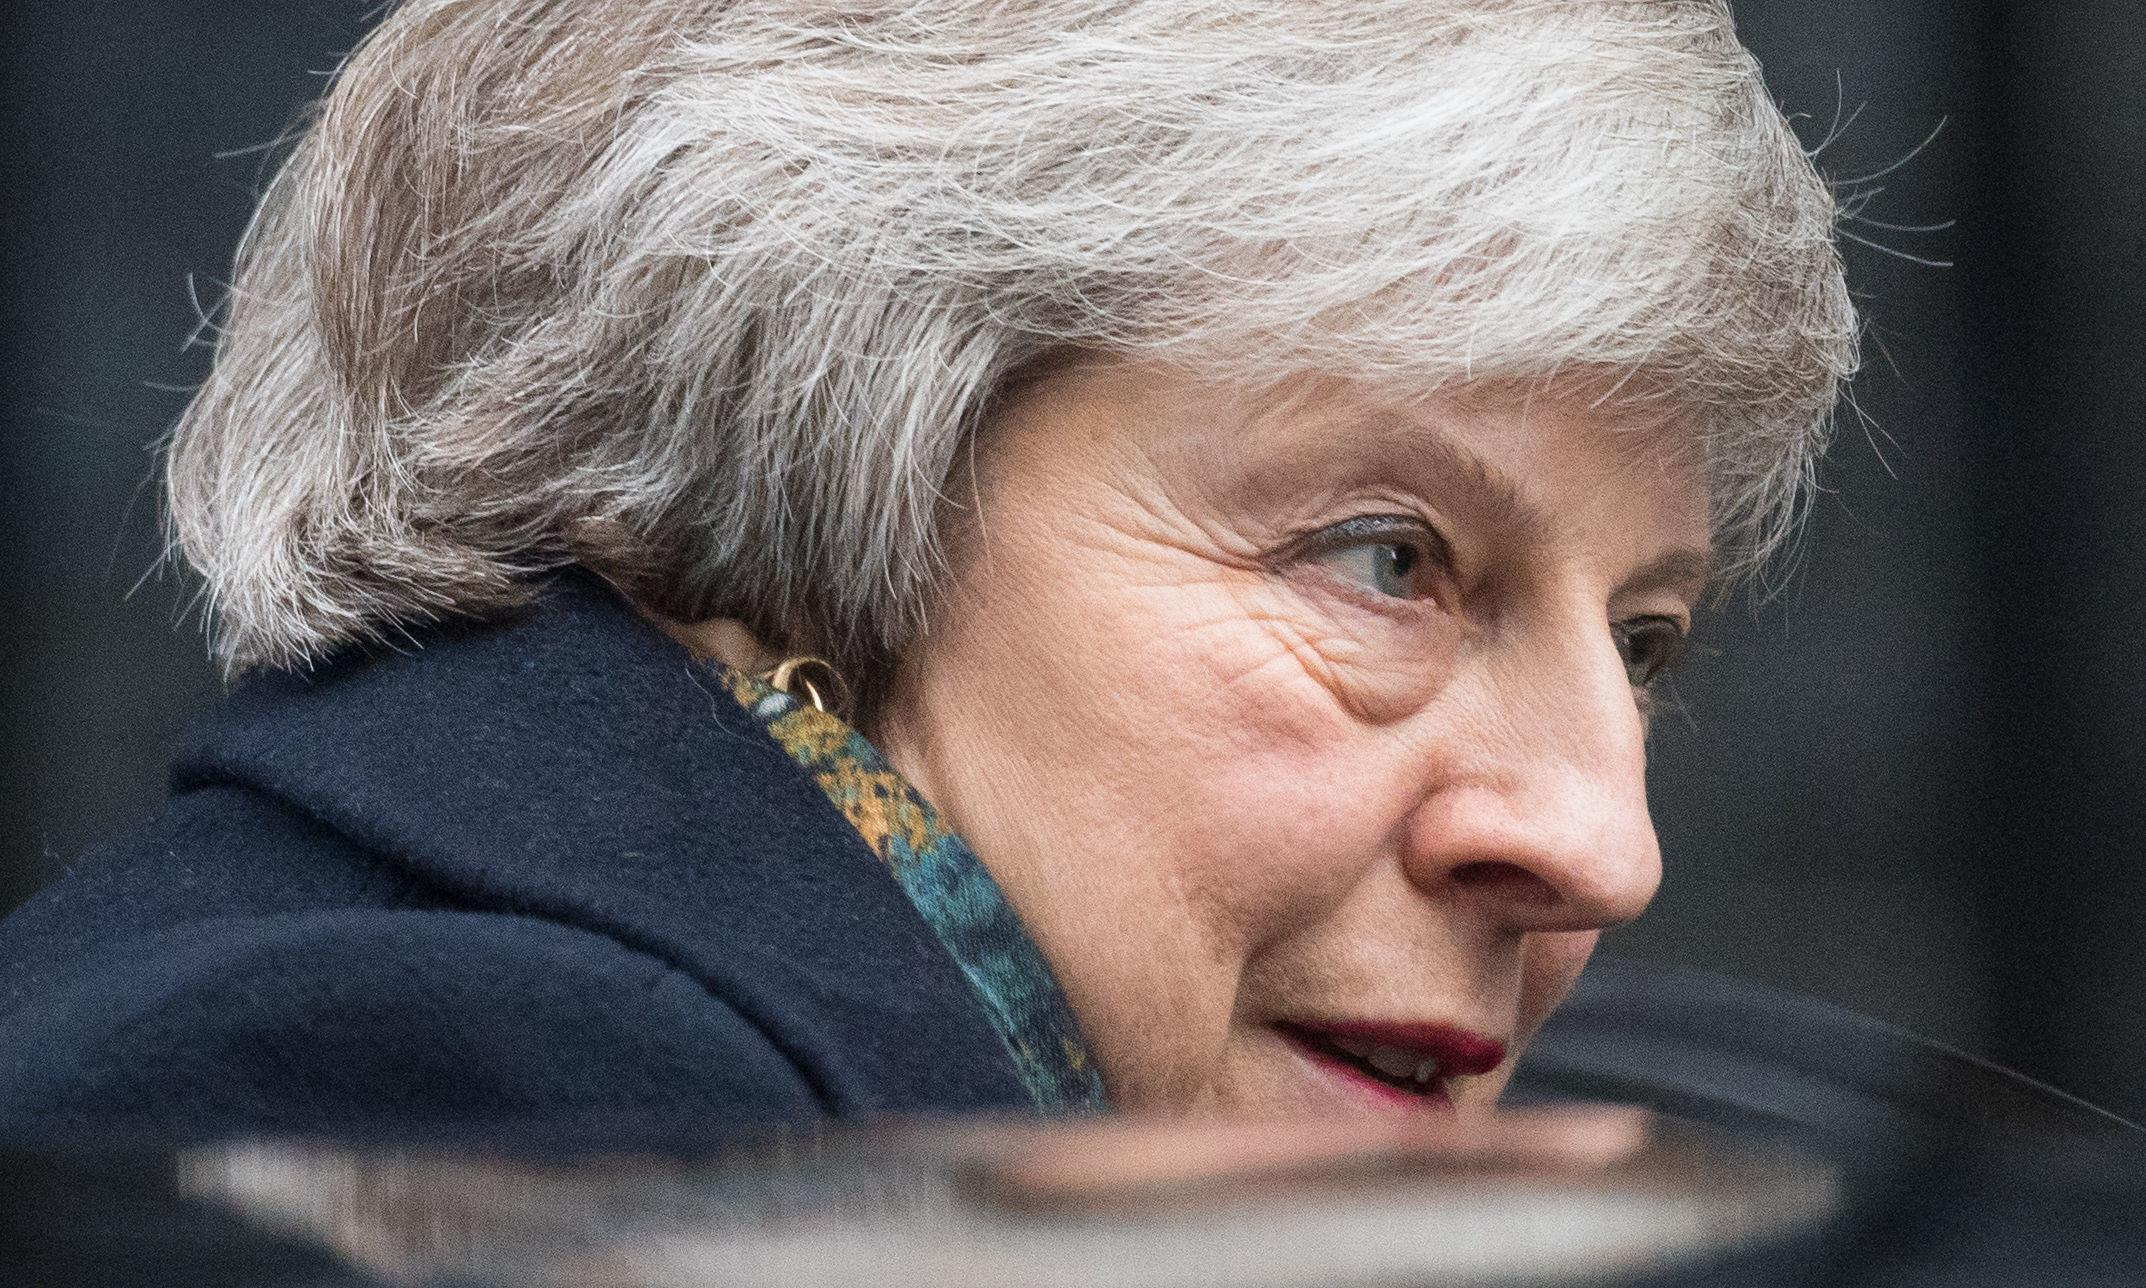 Business 'watching in horror' as PM plans for no-deal Brexit